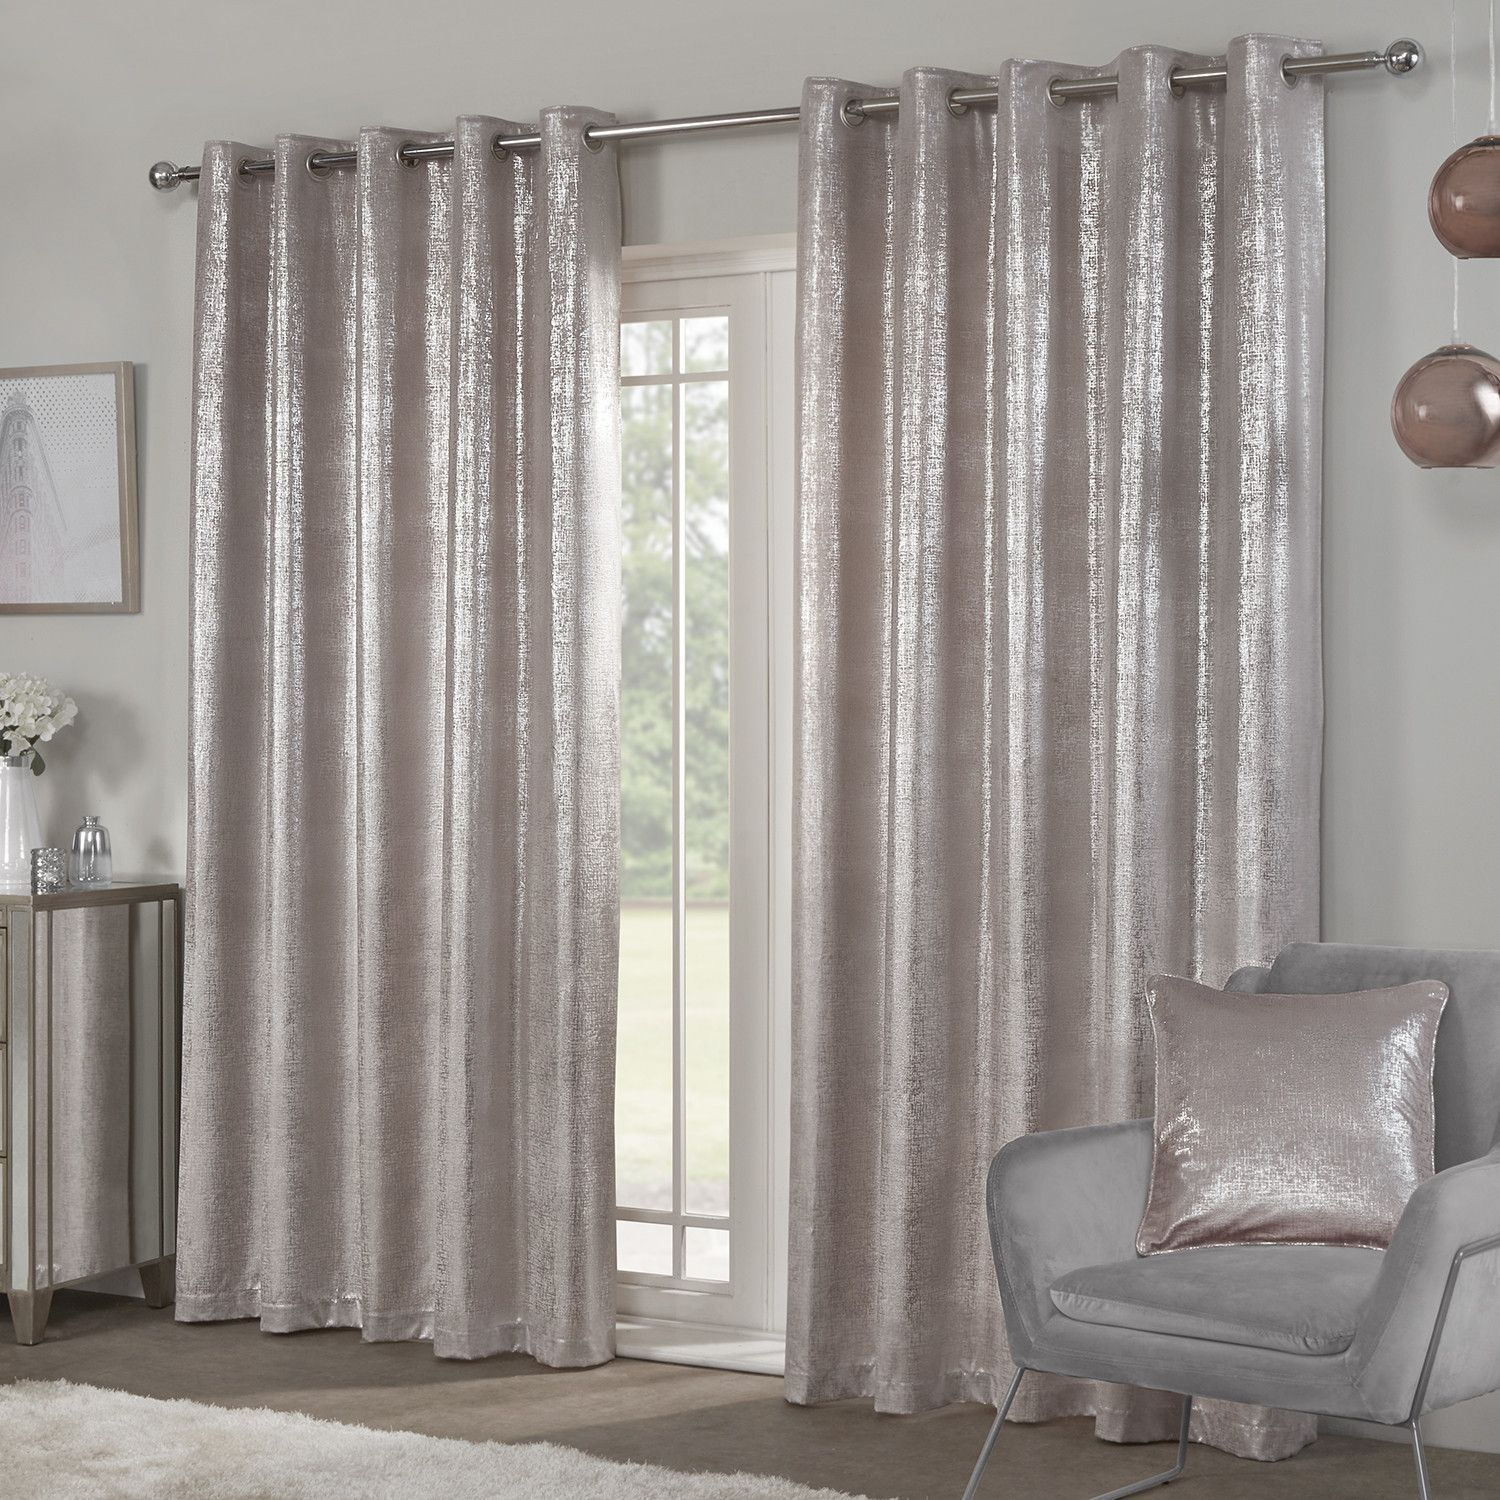 Samira Eyelet Curtains Curtains Curtains With Blinds White Curtains